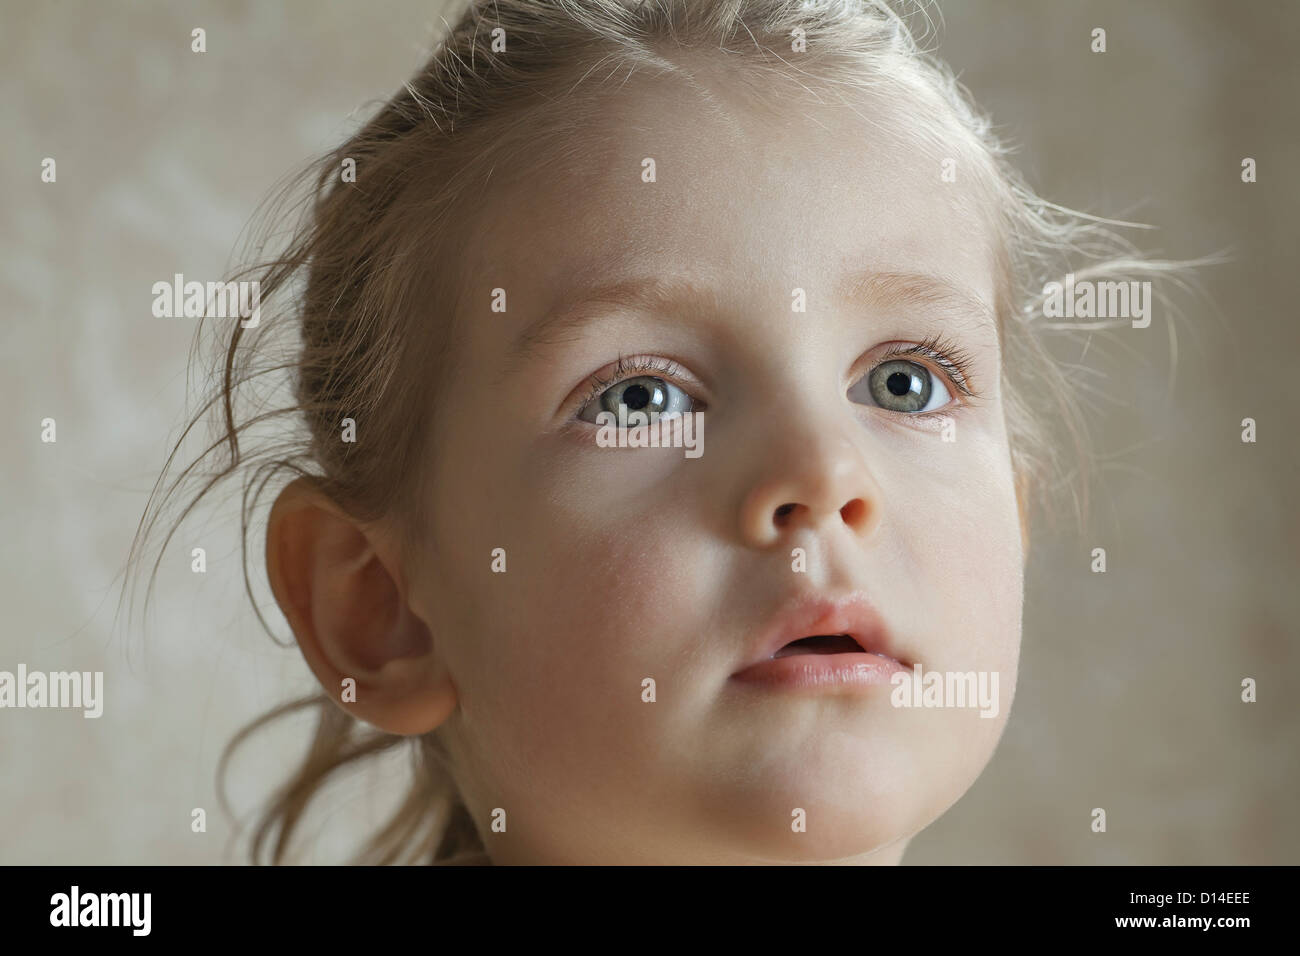 portrait of young girl looking astonished - Stock Image